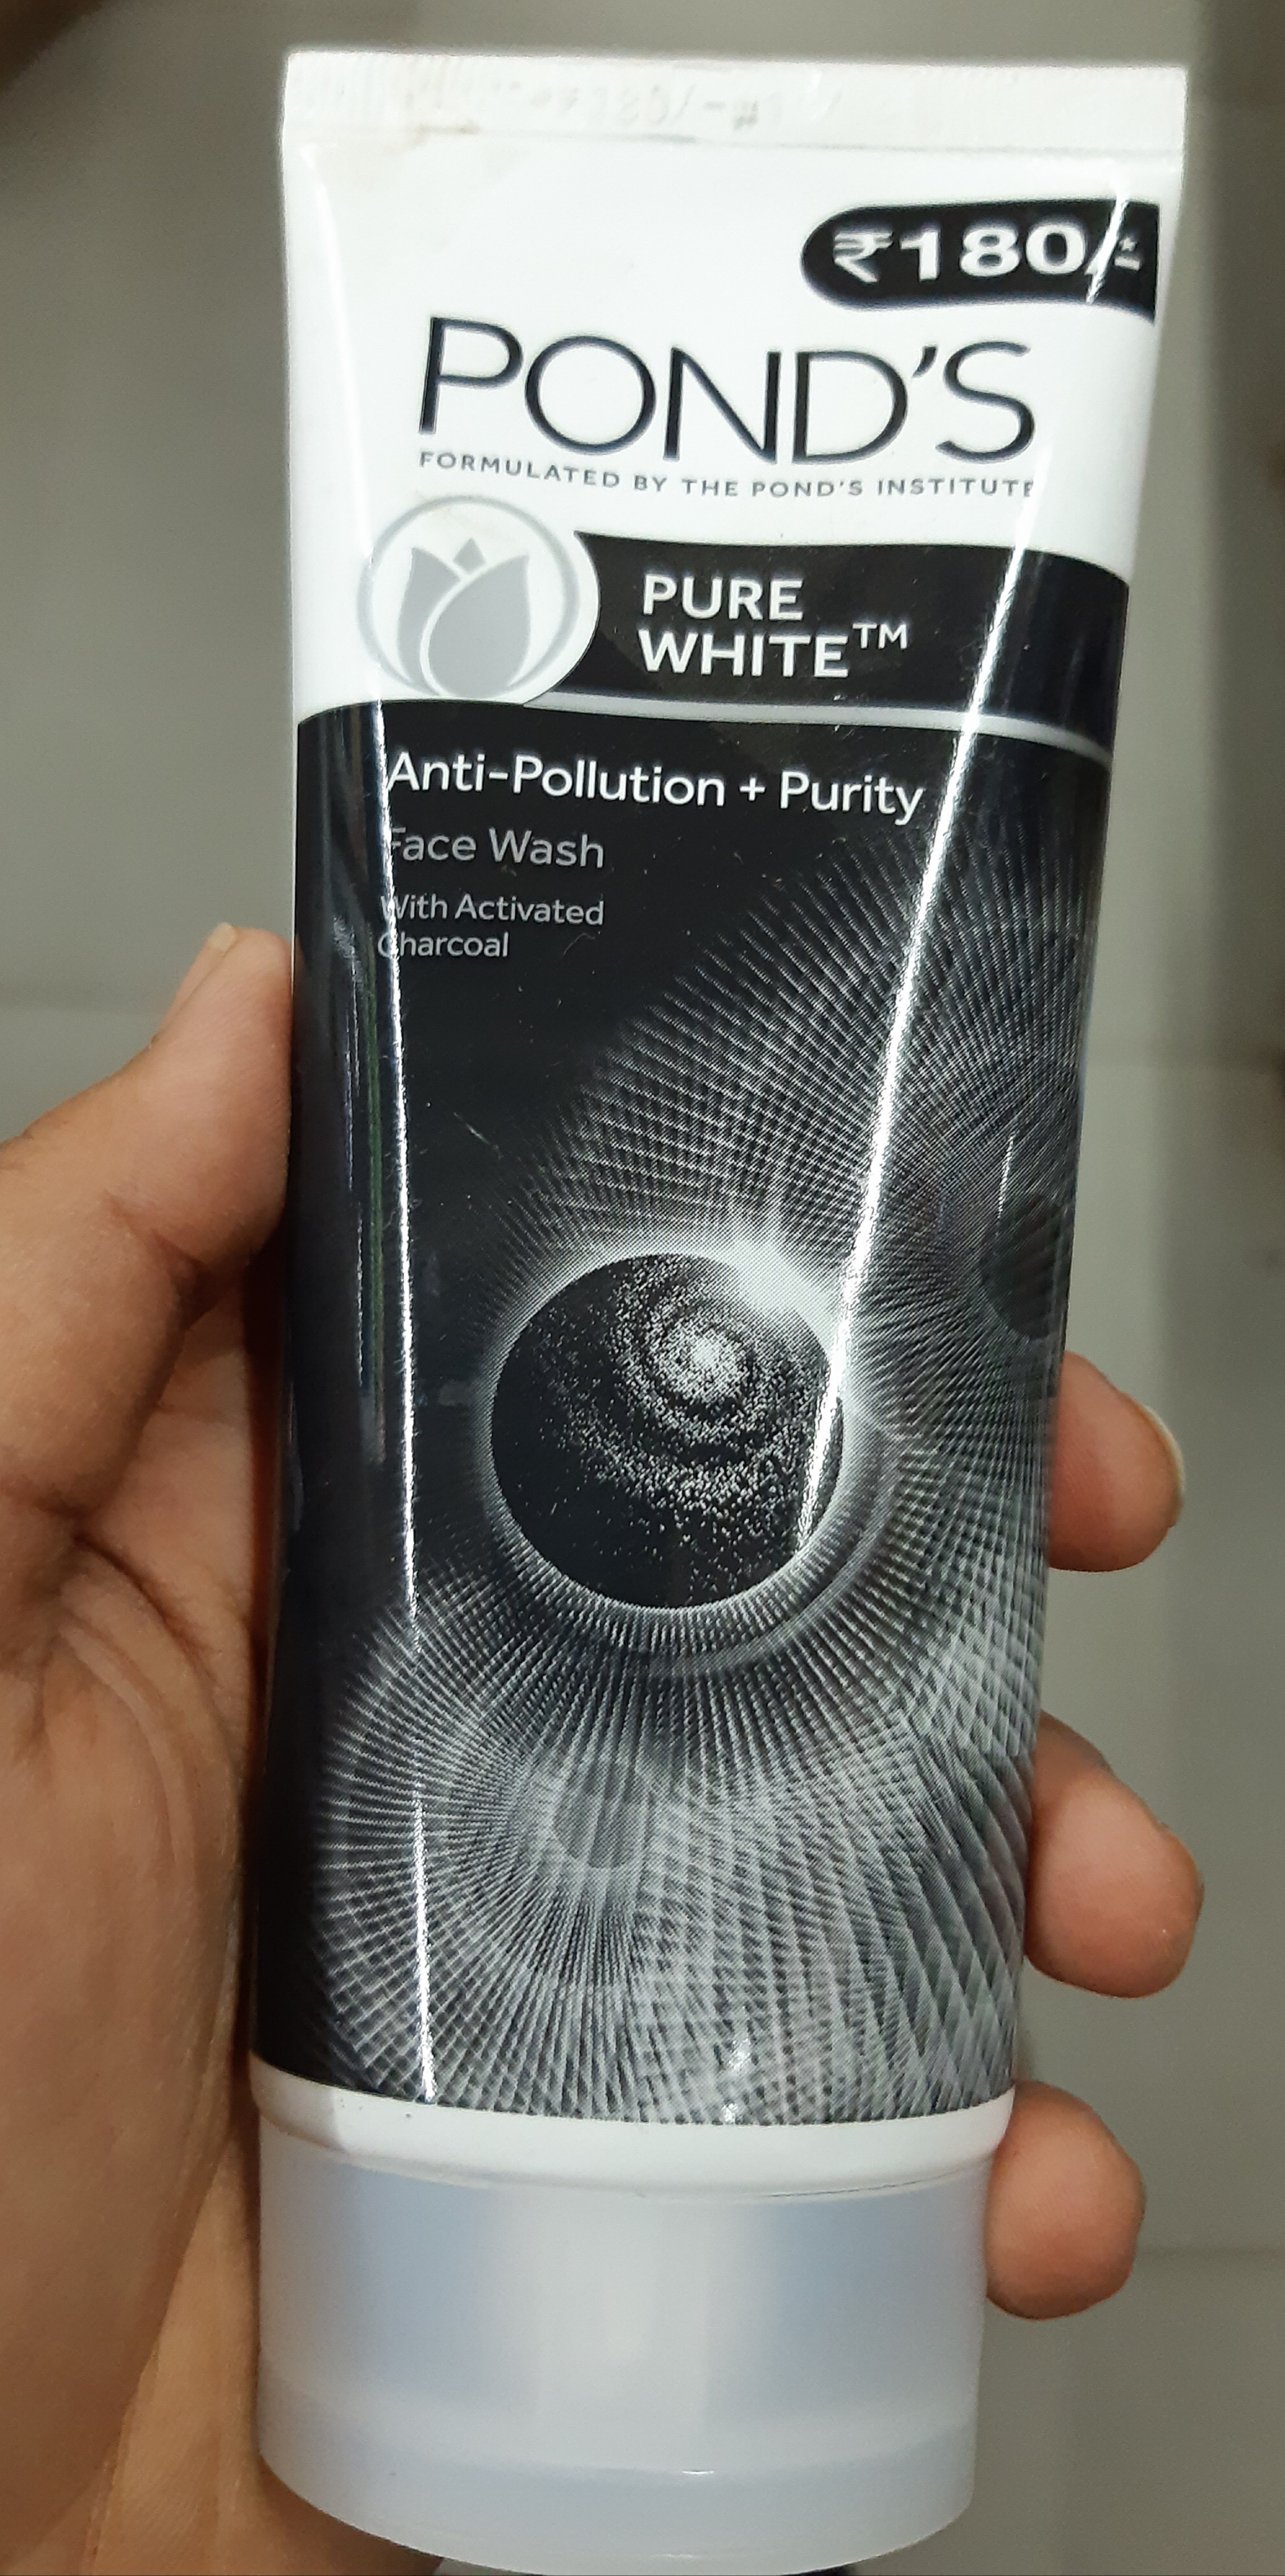 Ponds Pure White Anti Pollution + Purity Face Wash -Ponds pure white anti pollution face wash-By rishikasahoo